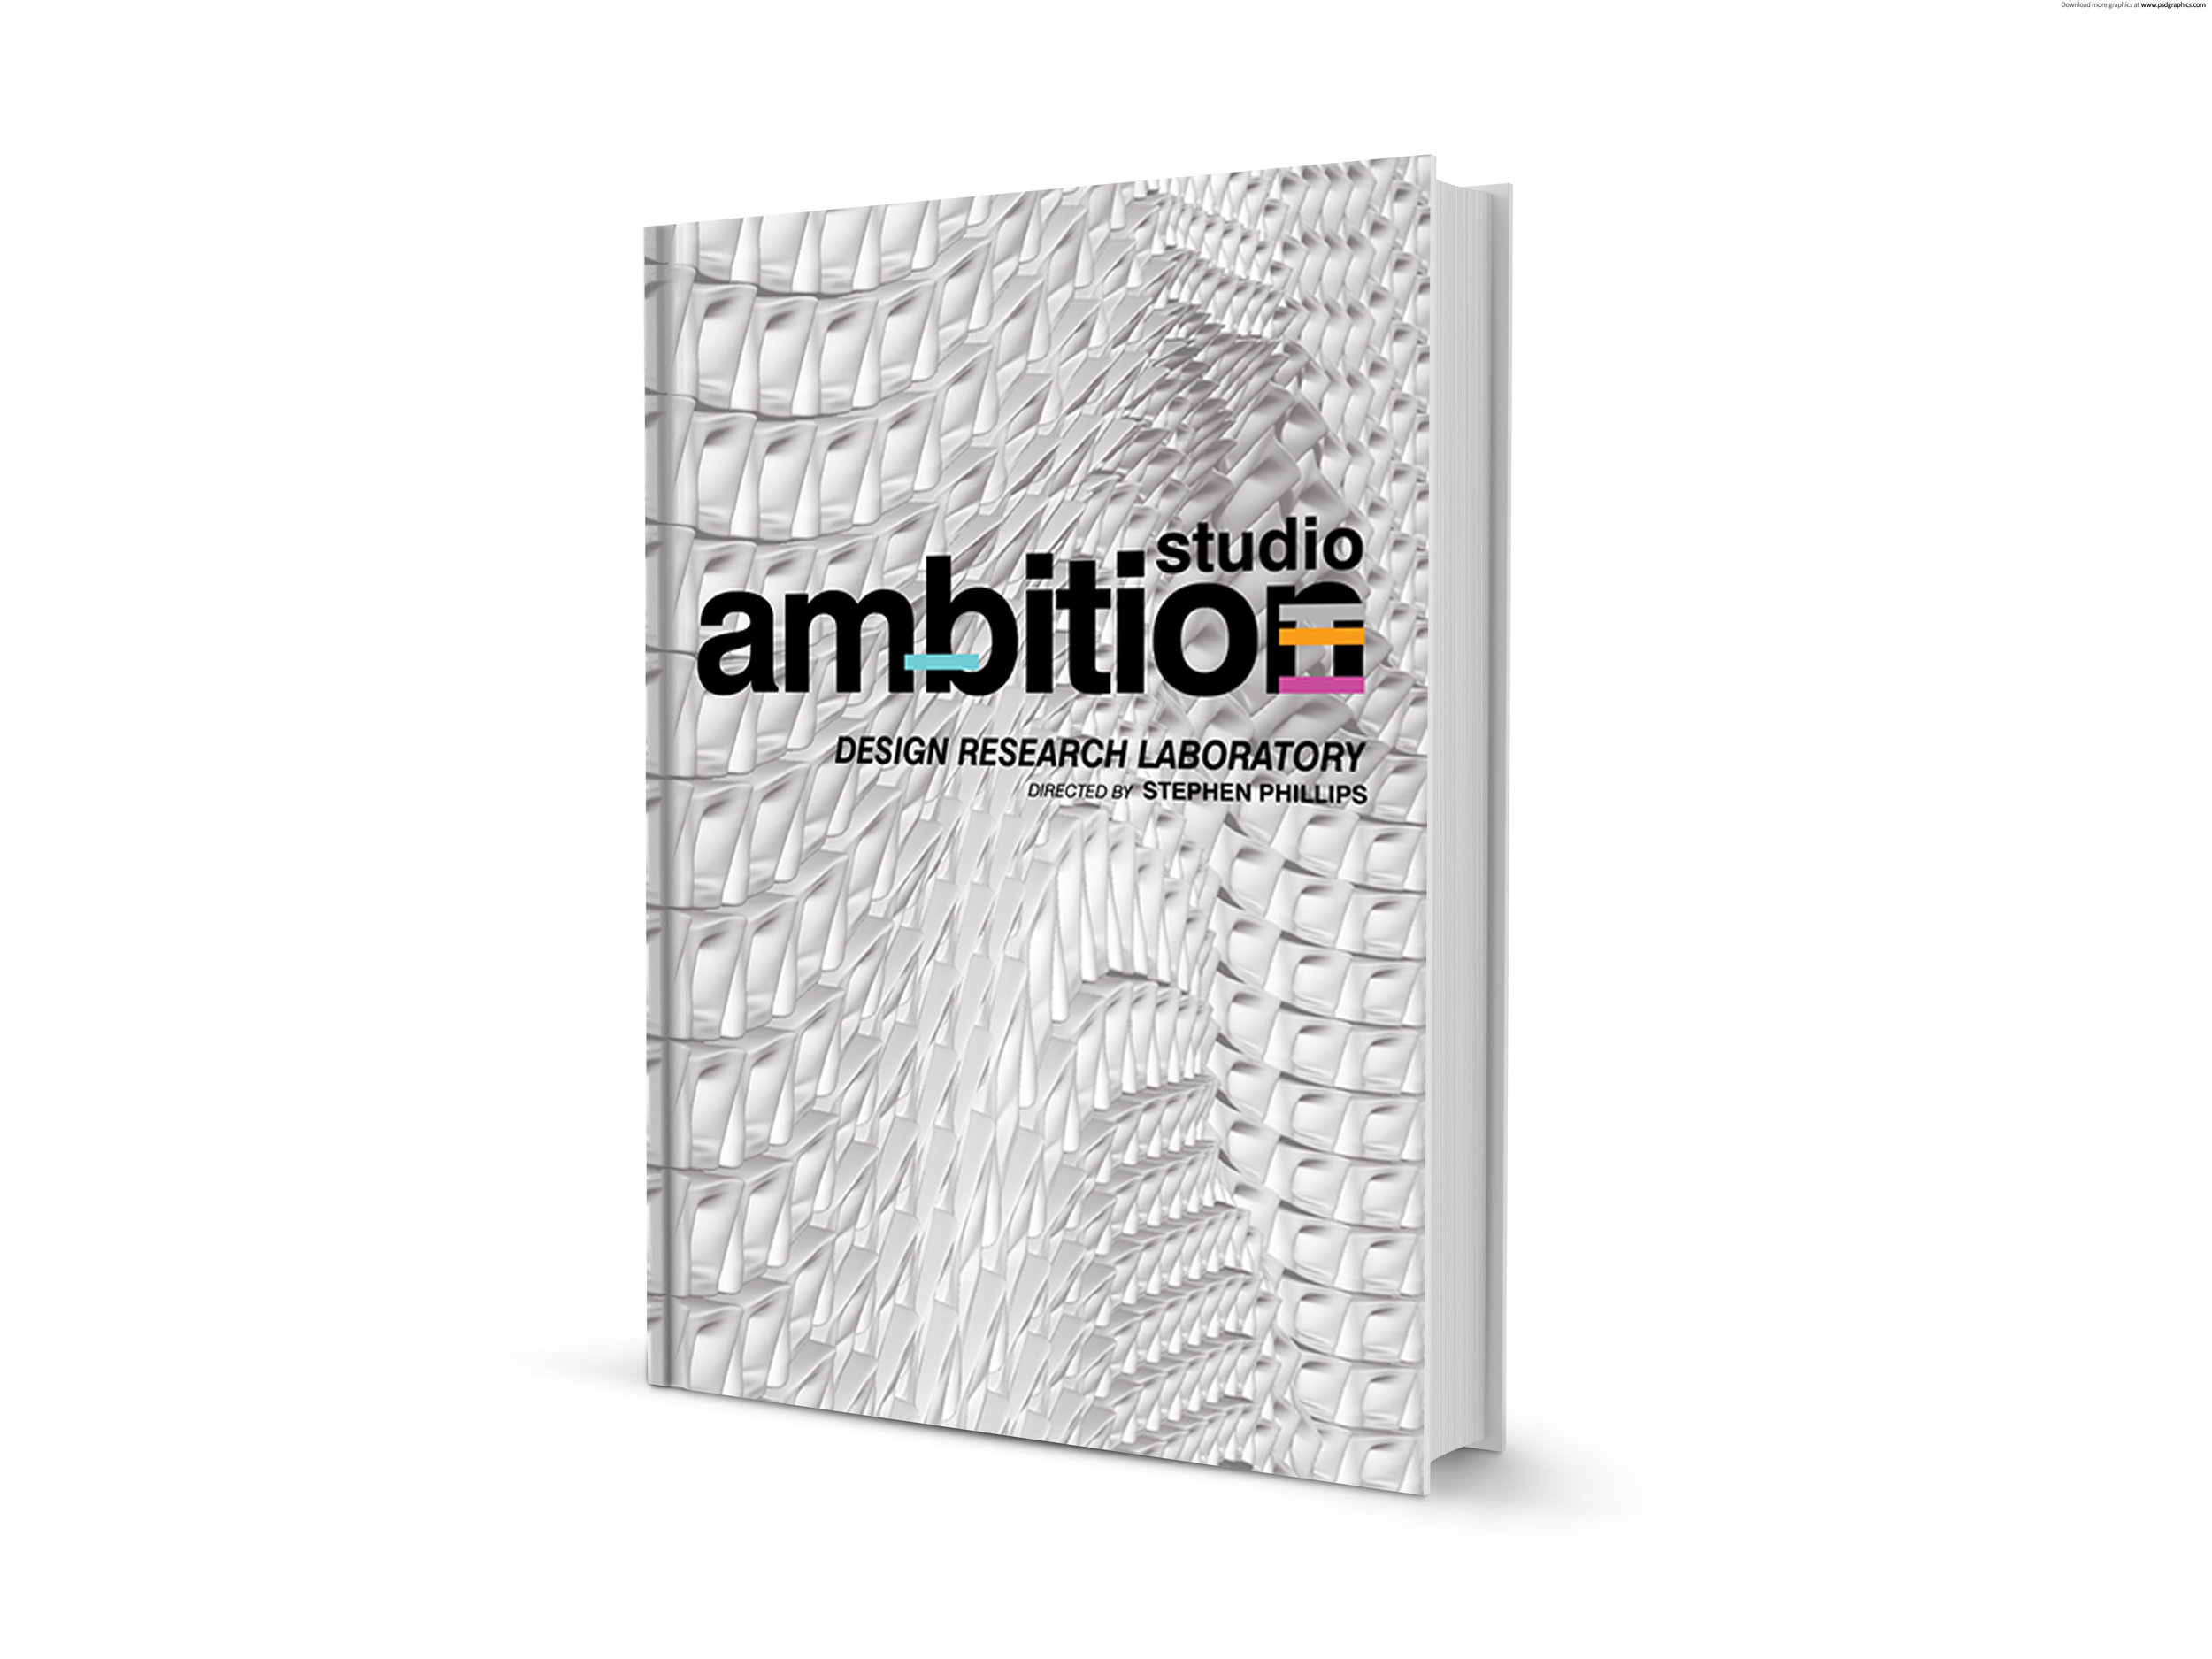 Studio Ambition: Architecture Research Laboratory,   edited by Stephen Phillips (AeDPress, 2009)    order here